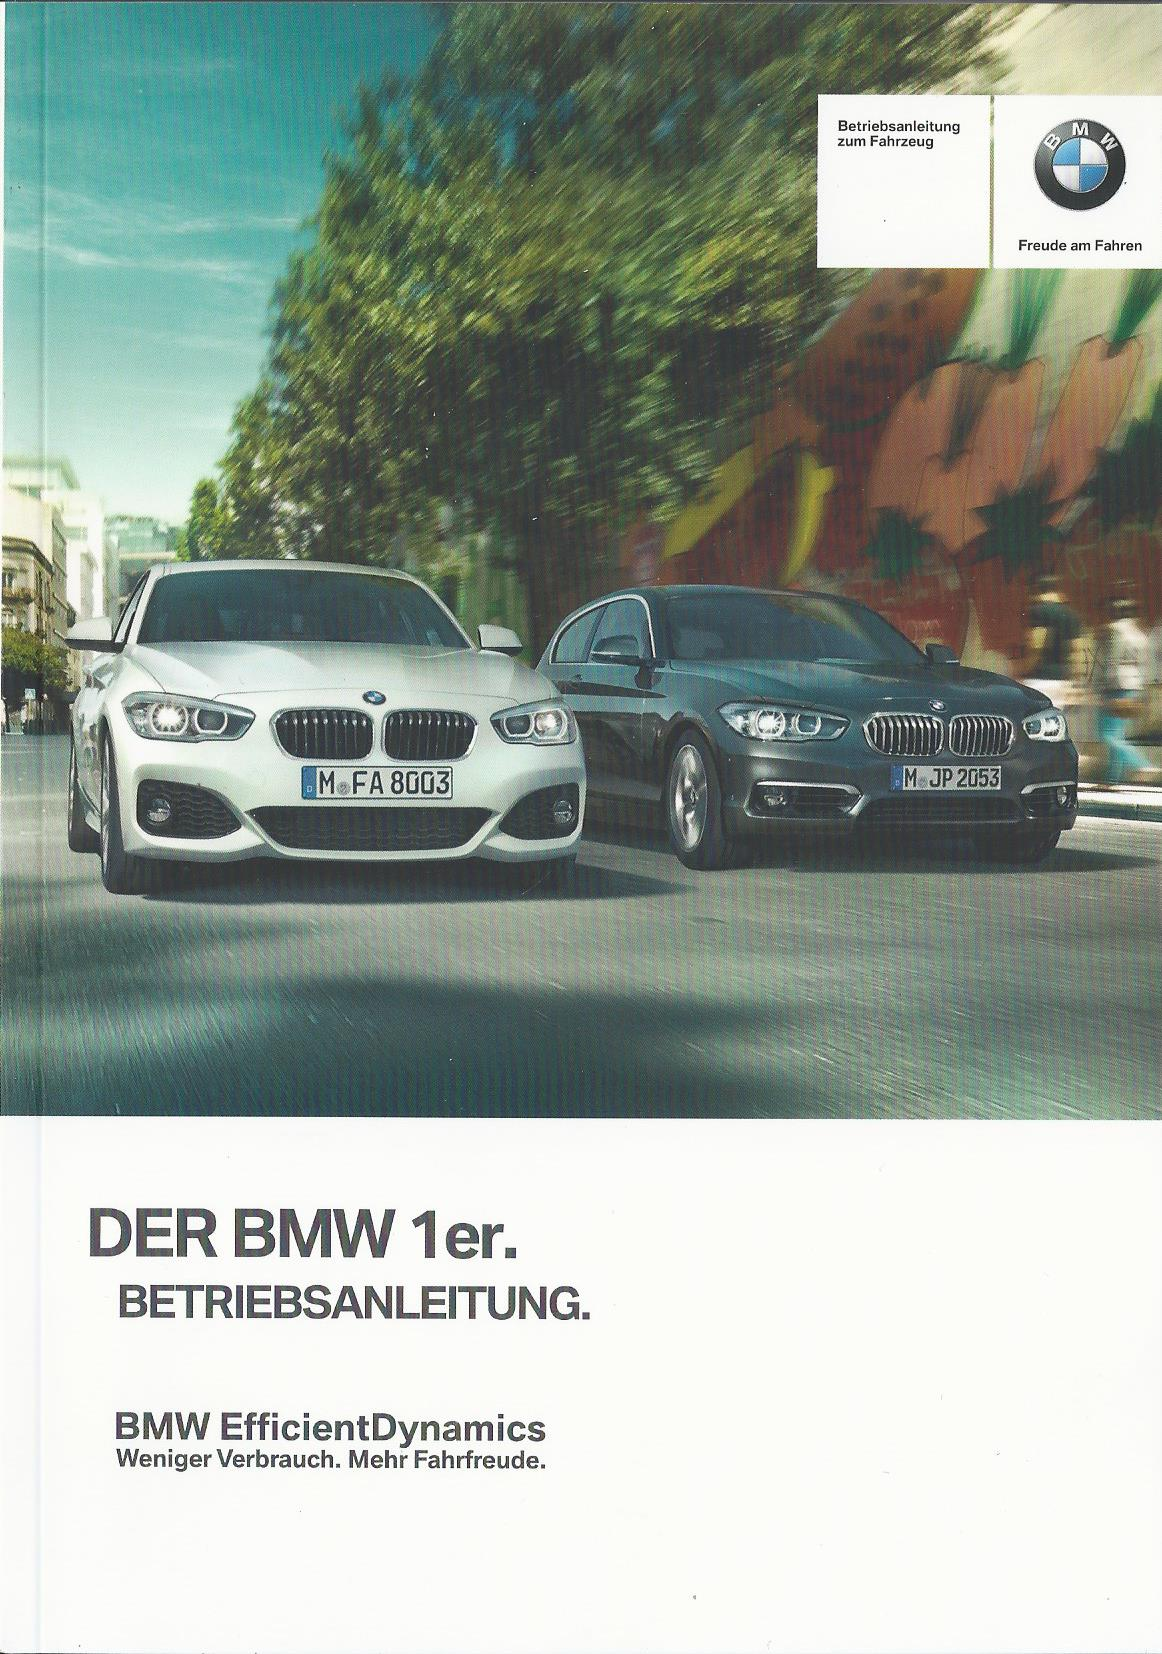 bmw 1er f20 f21 betriebsanleitung 2015 bedienungsanleitung handbuch ba 5c ebay. Black Bedroom Furniture Sets. Home Design Ideas